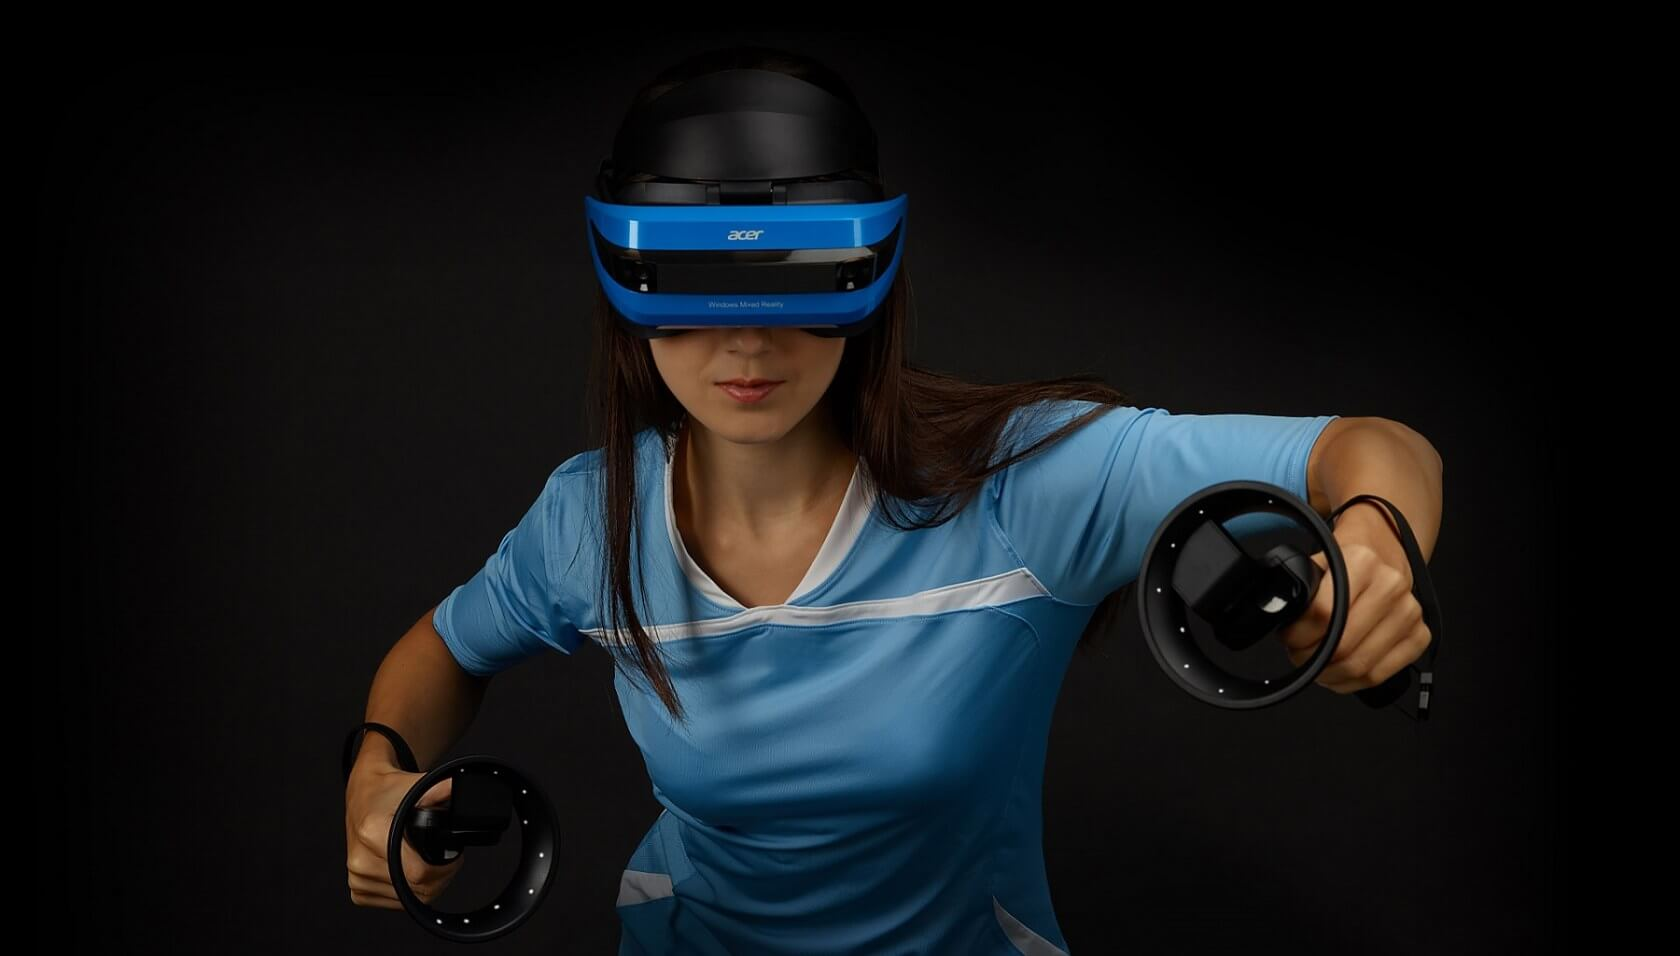 How Ending Its Virtual Reality Play Eventually Could Hurt Microsoft Stock